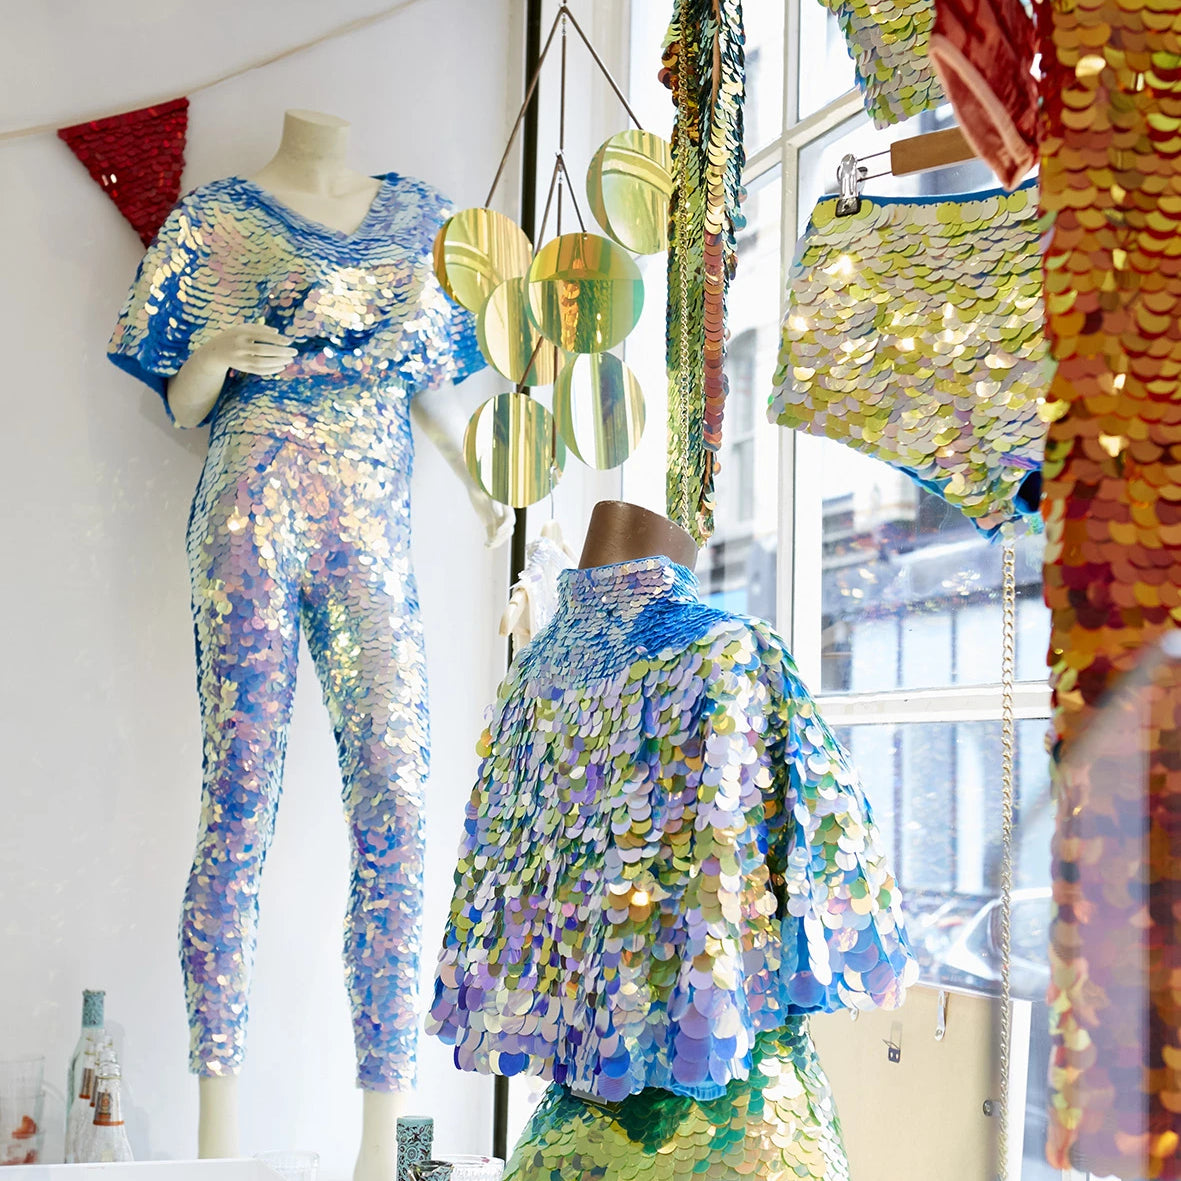 Sequin clothing display in a shop window